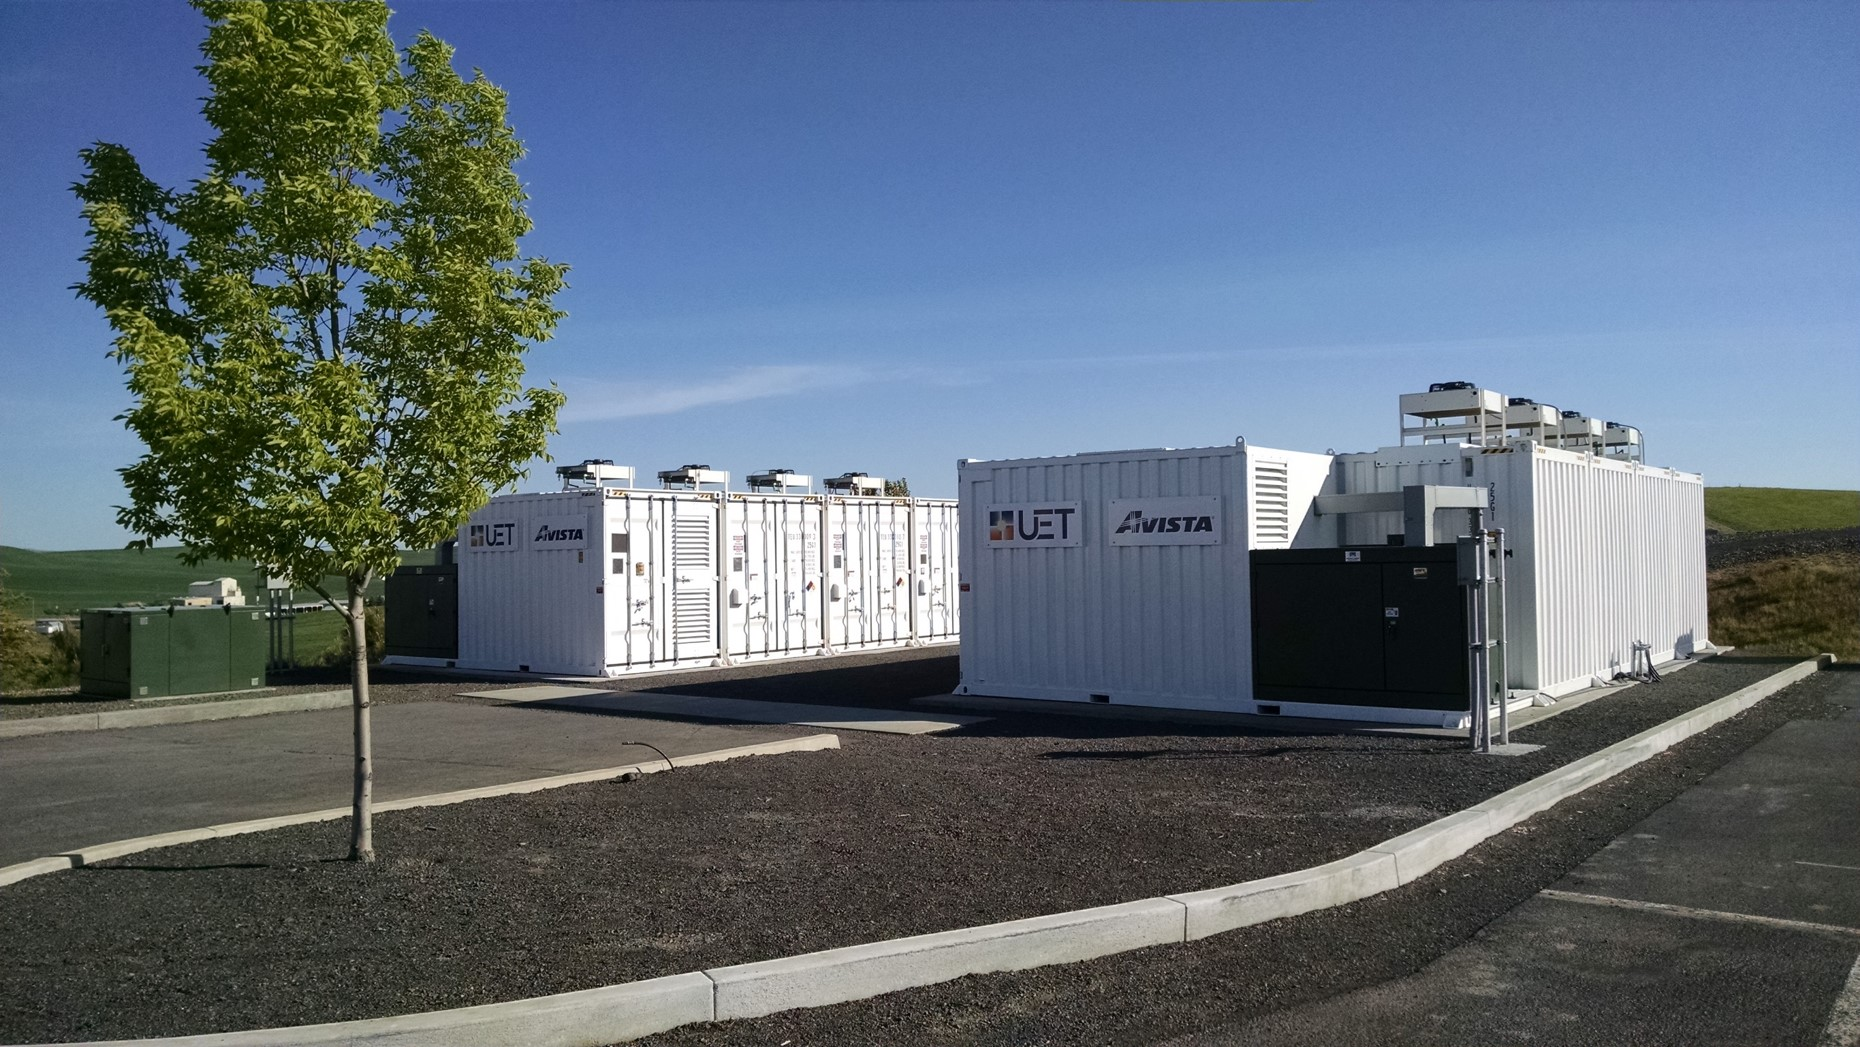 1_MW_4_MWh_Turner_Energy_Storage_Project_in_Pullman,_WA